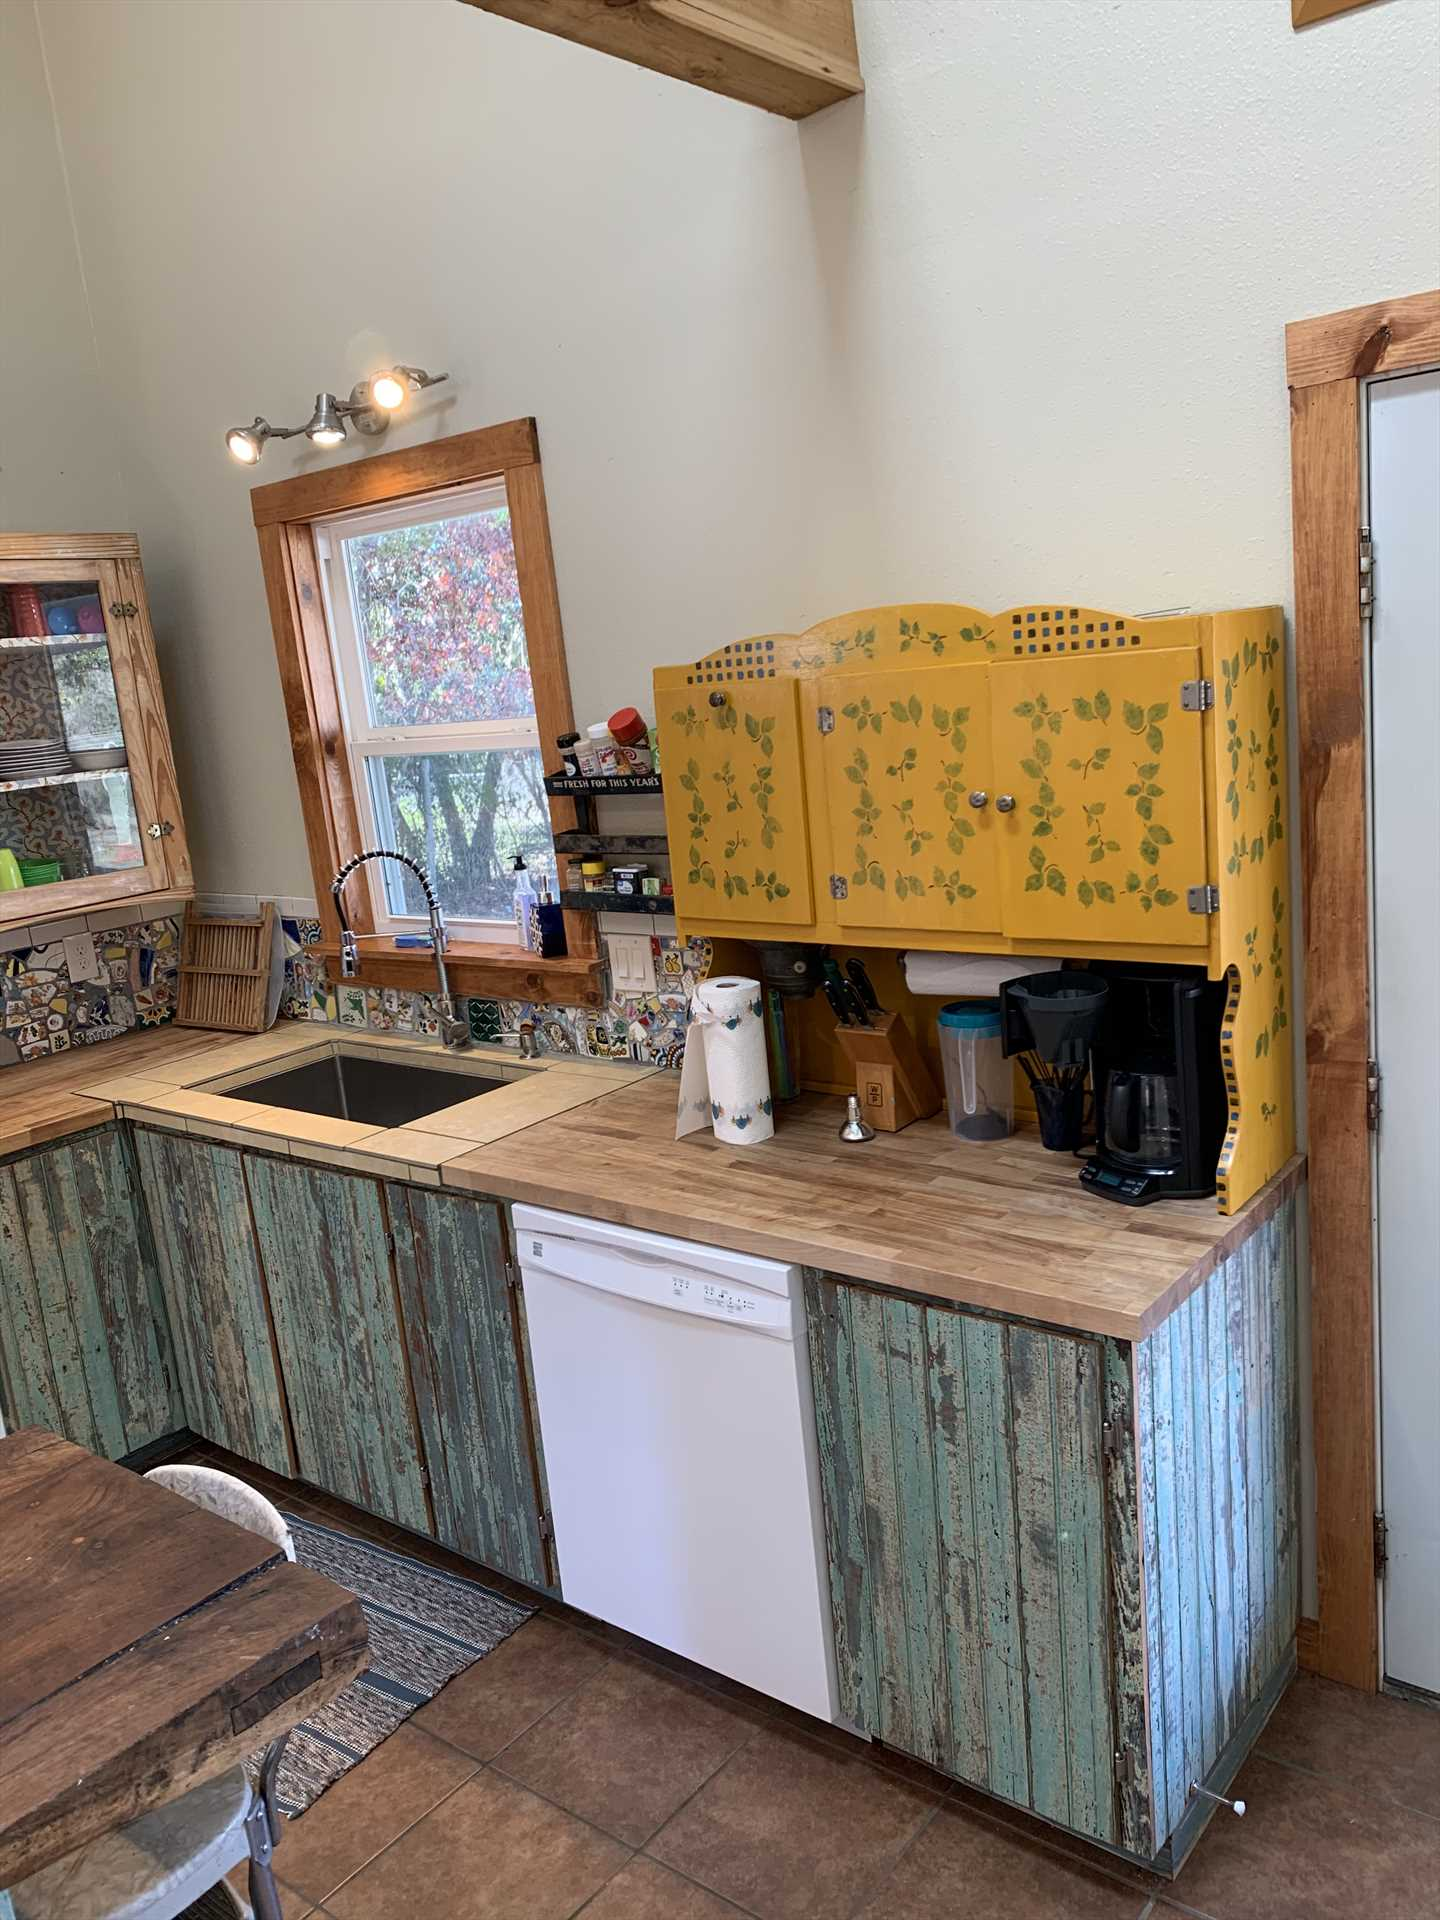 Rustic, vintage cabinetry highlights the full and modern kitchen!